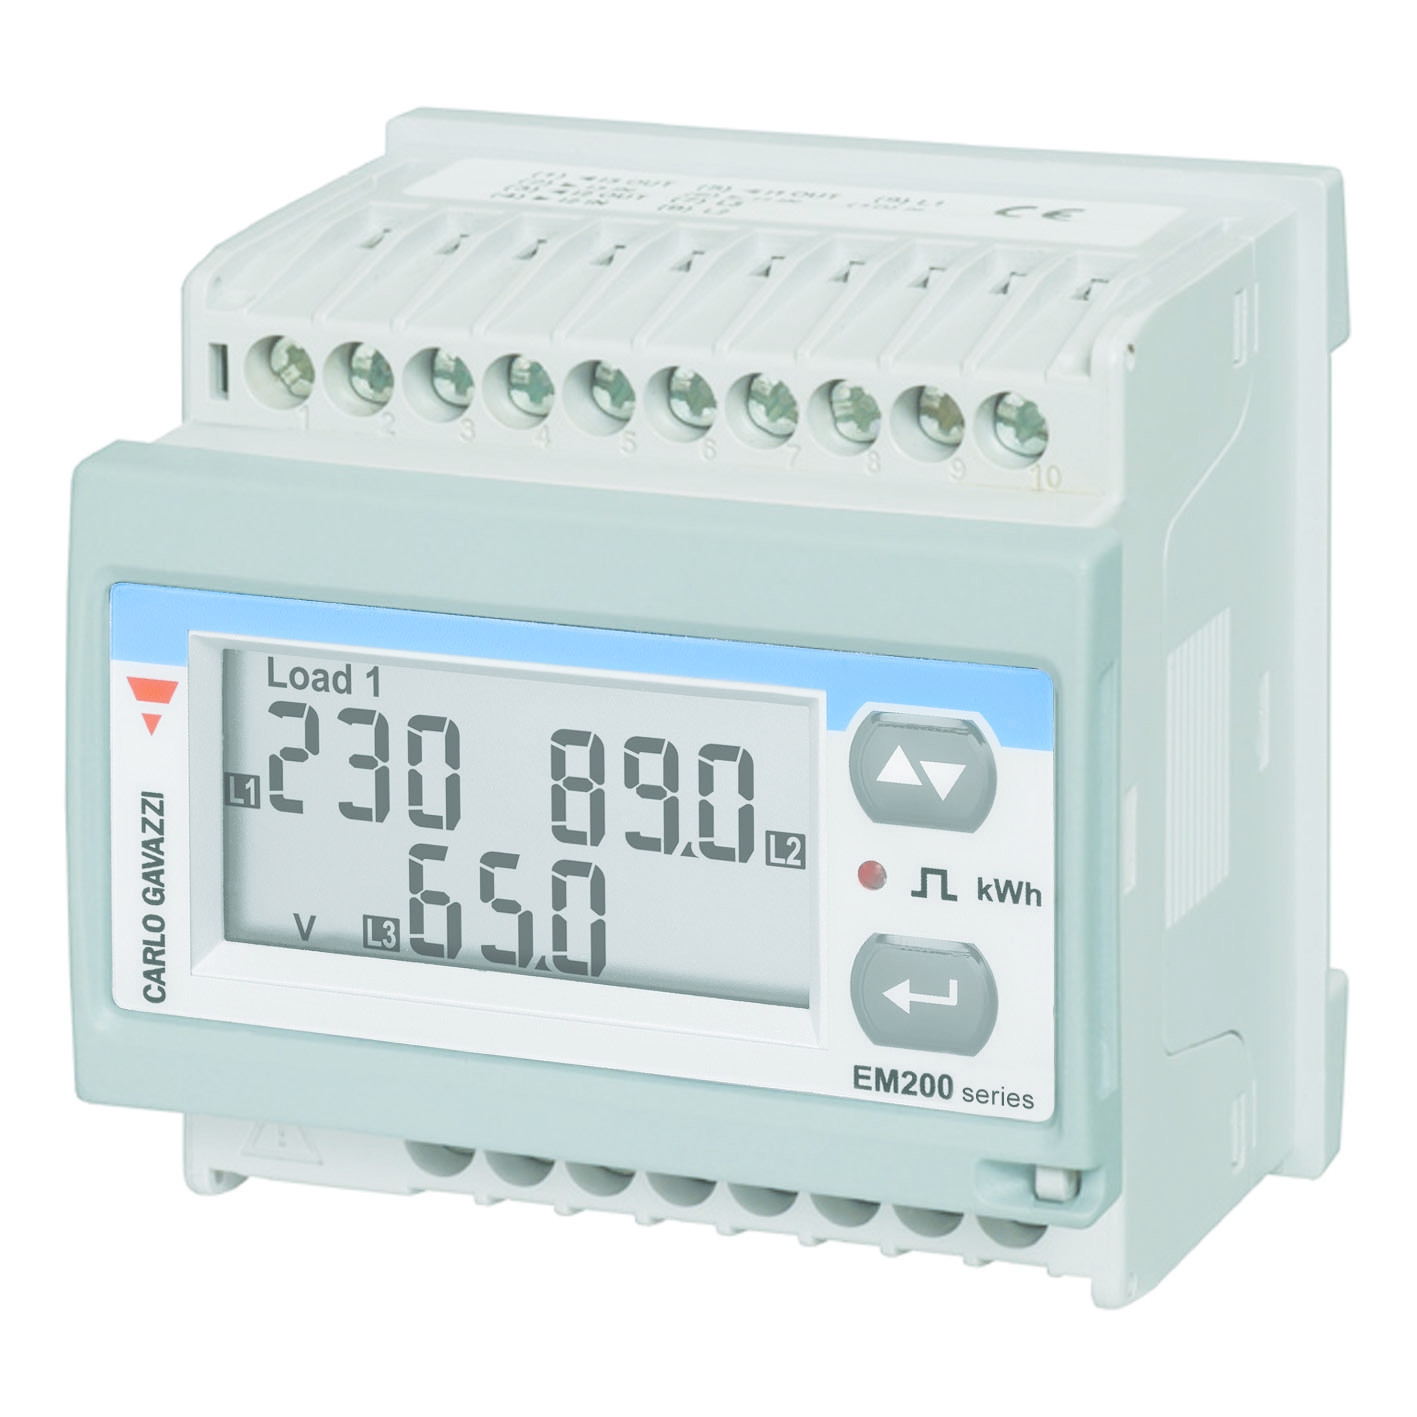 Carlo Gavazz Em210 72v Energy Meter Series Mv How To Wire 3phase Kwh Electrical Technology It Is A Versatile That Can Be Used On All Types Of Supply 1 2 3 Phase